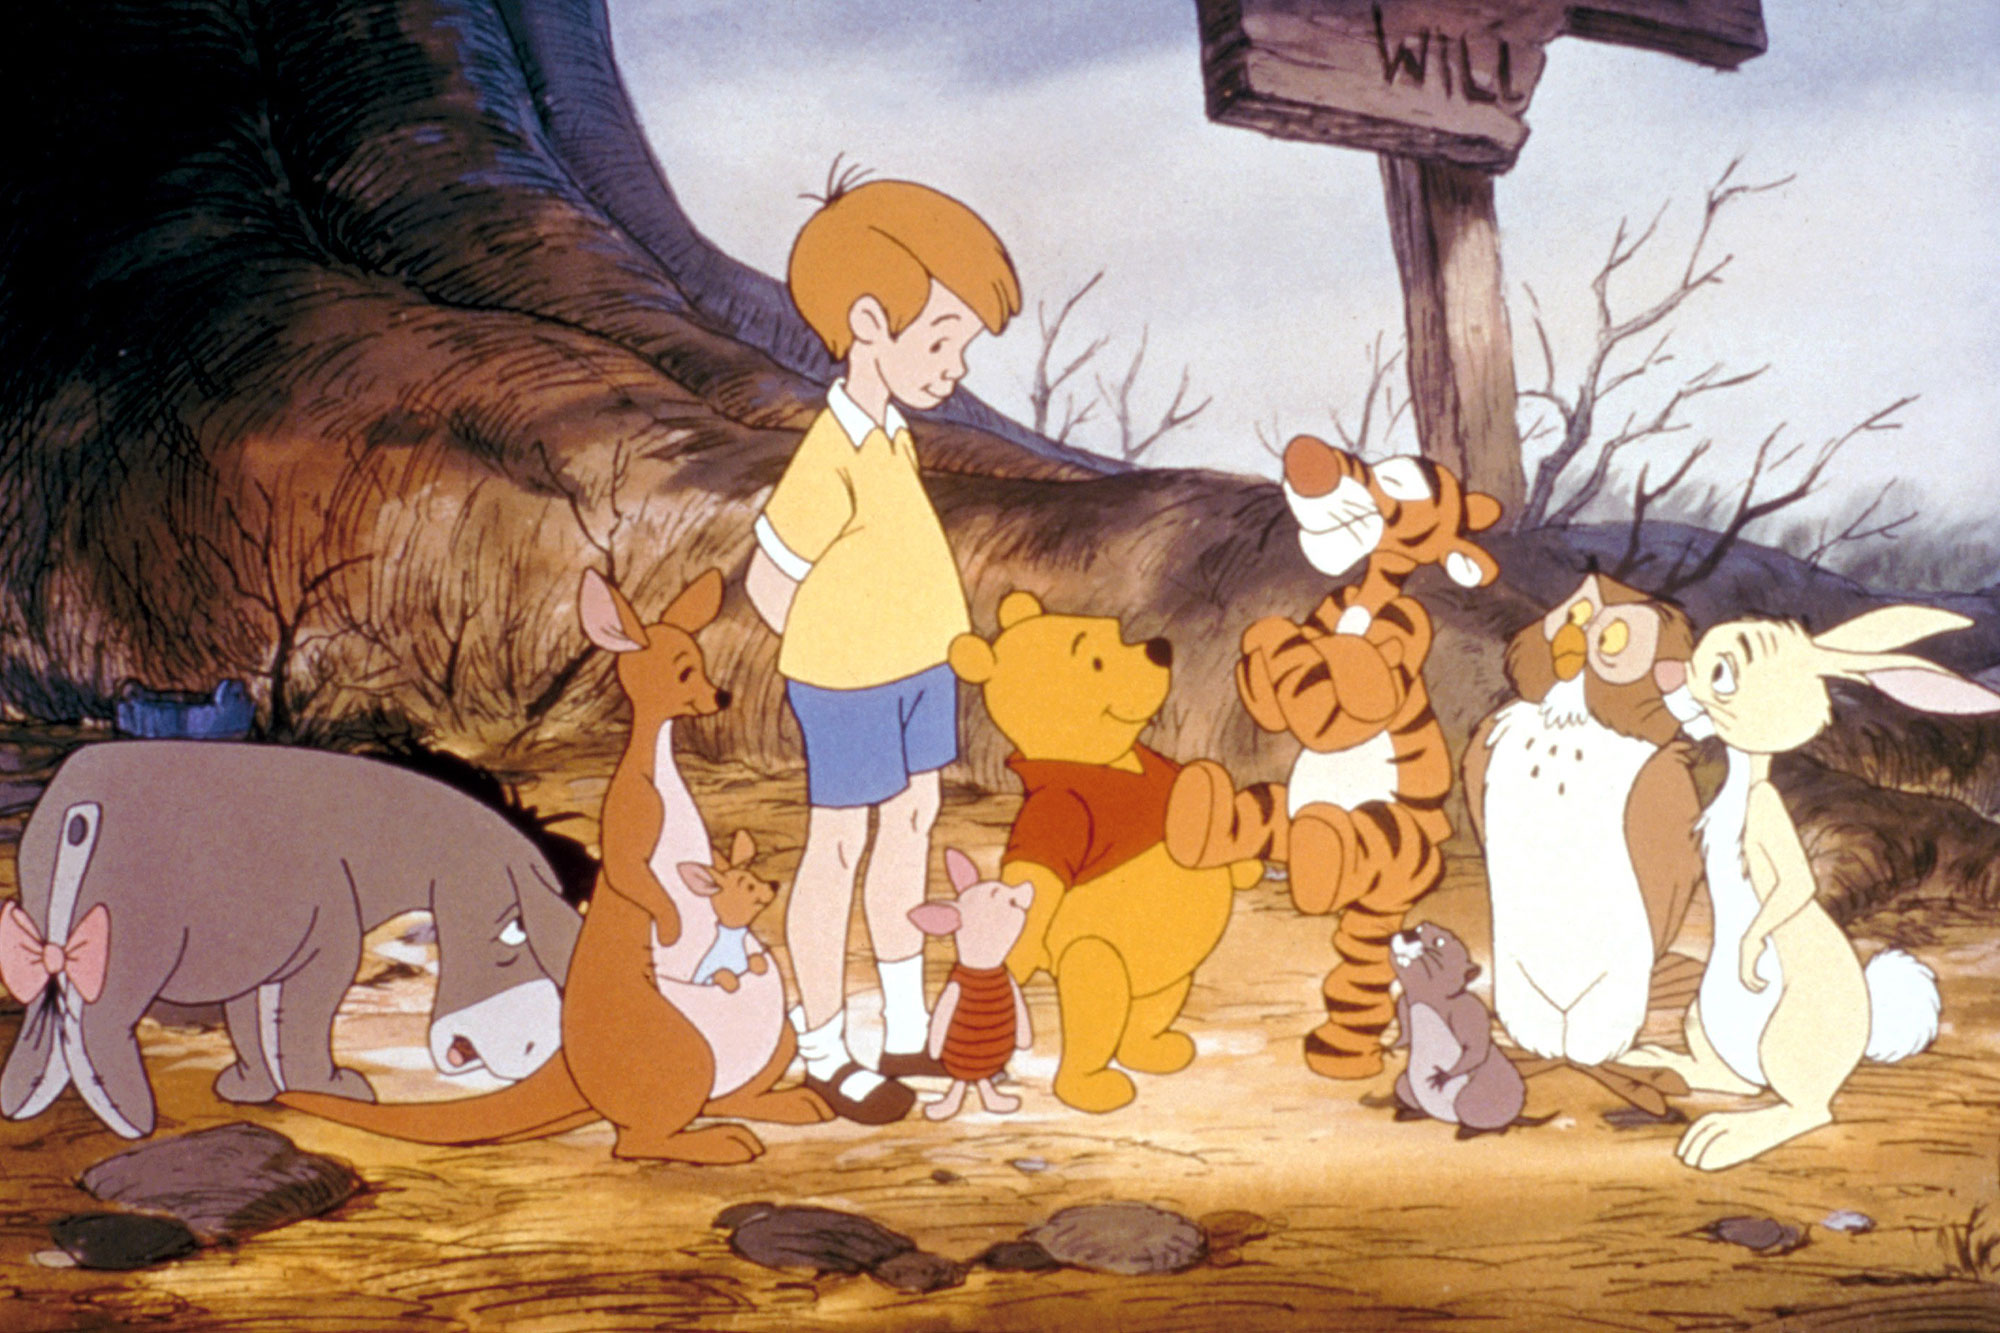 NEW ADVENTURES OF WINNIE THE POOH, Eeyore, Kanga, Roo, Christopher Robin, Piglet, Winnie the Pooh, Tigger, Owl, Rabbit, 1988-91, © Walt Disney / Courtesy: Everett Collection